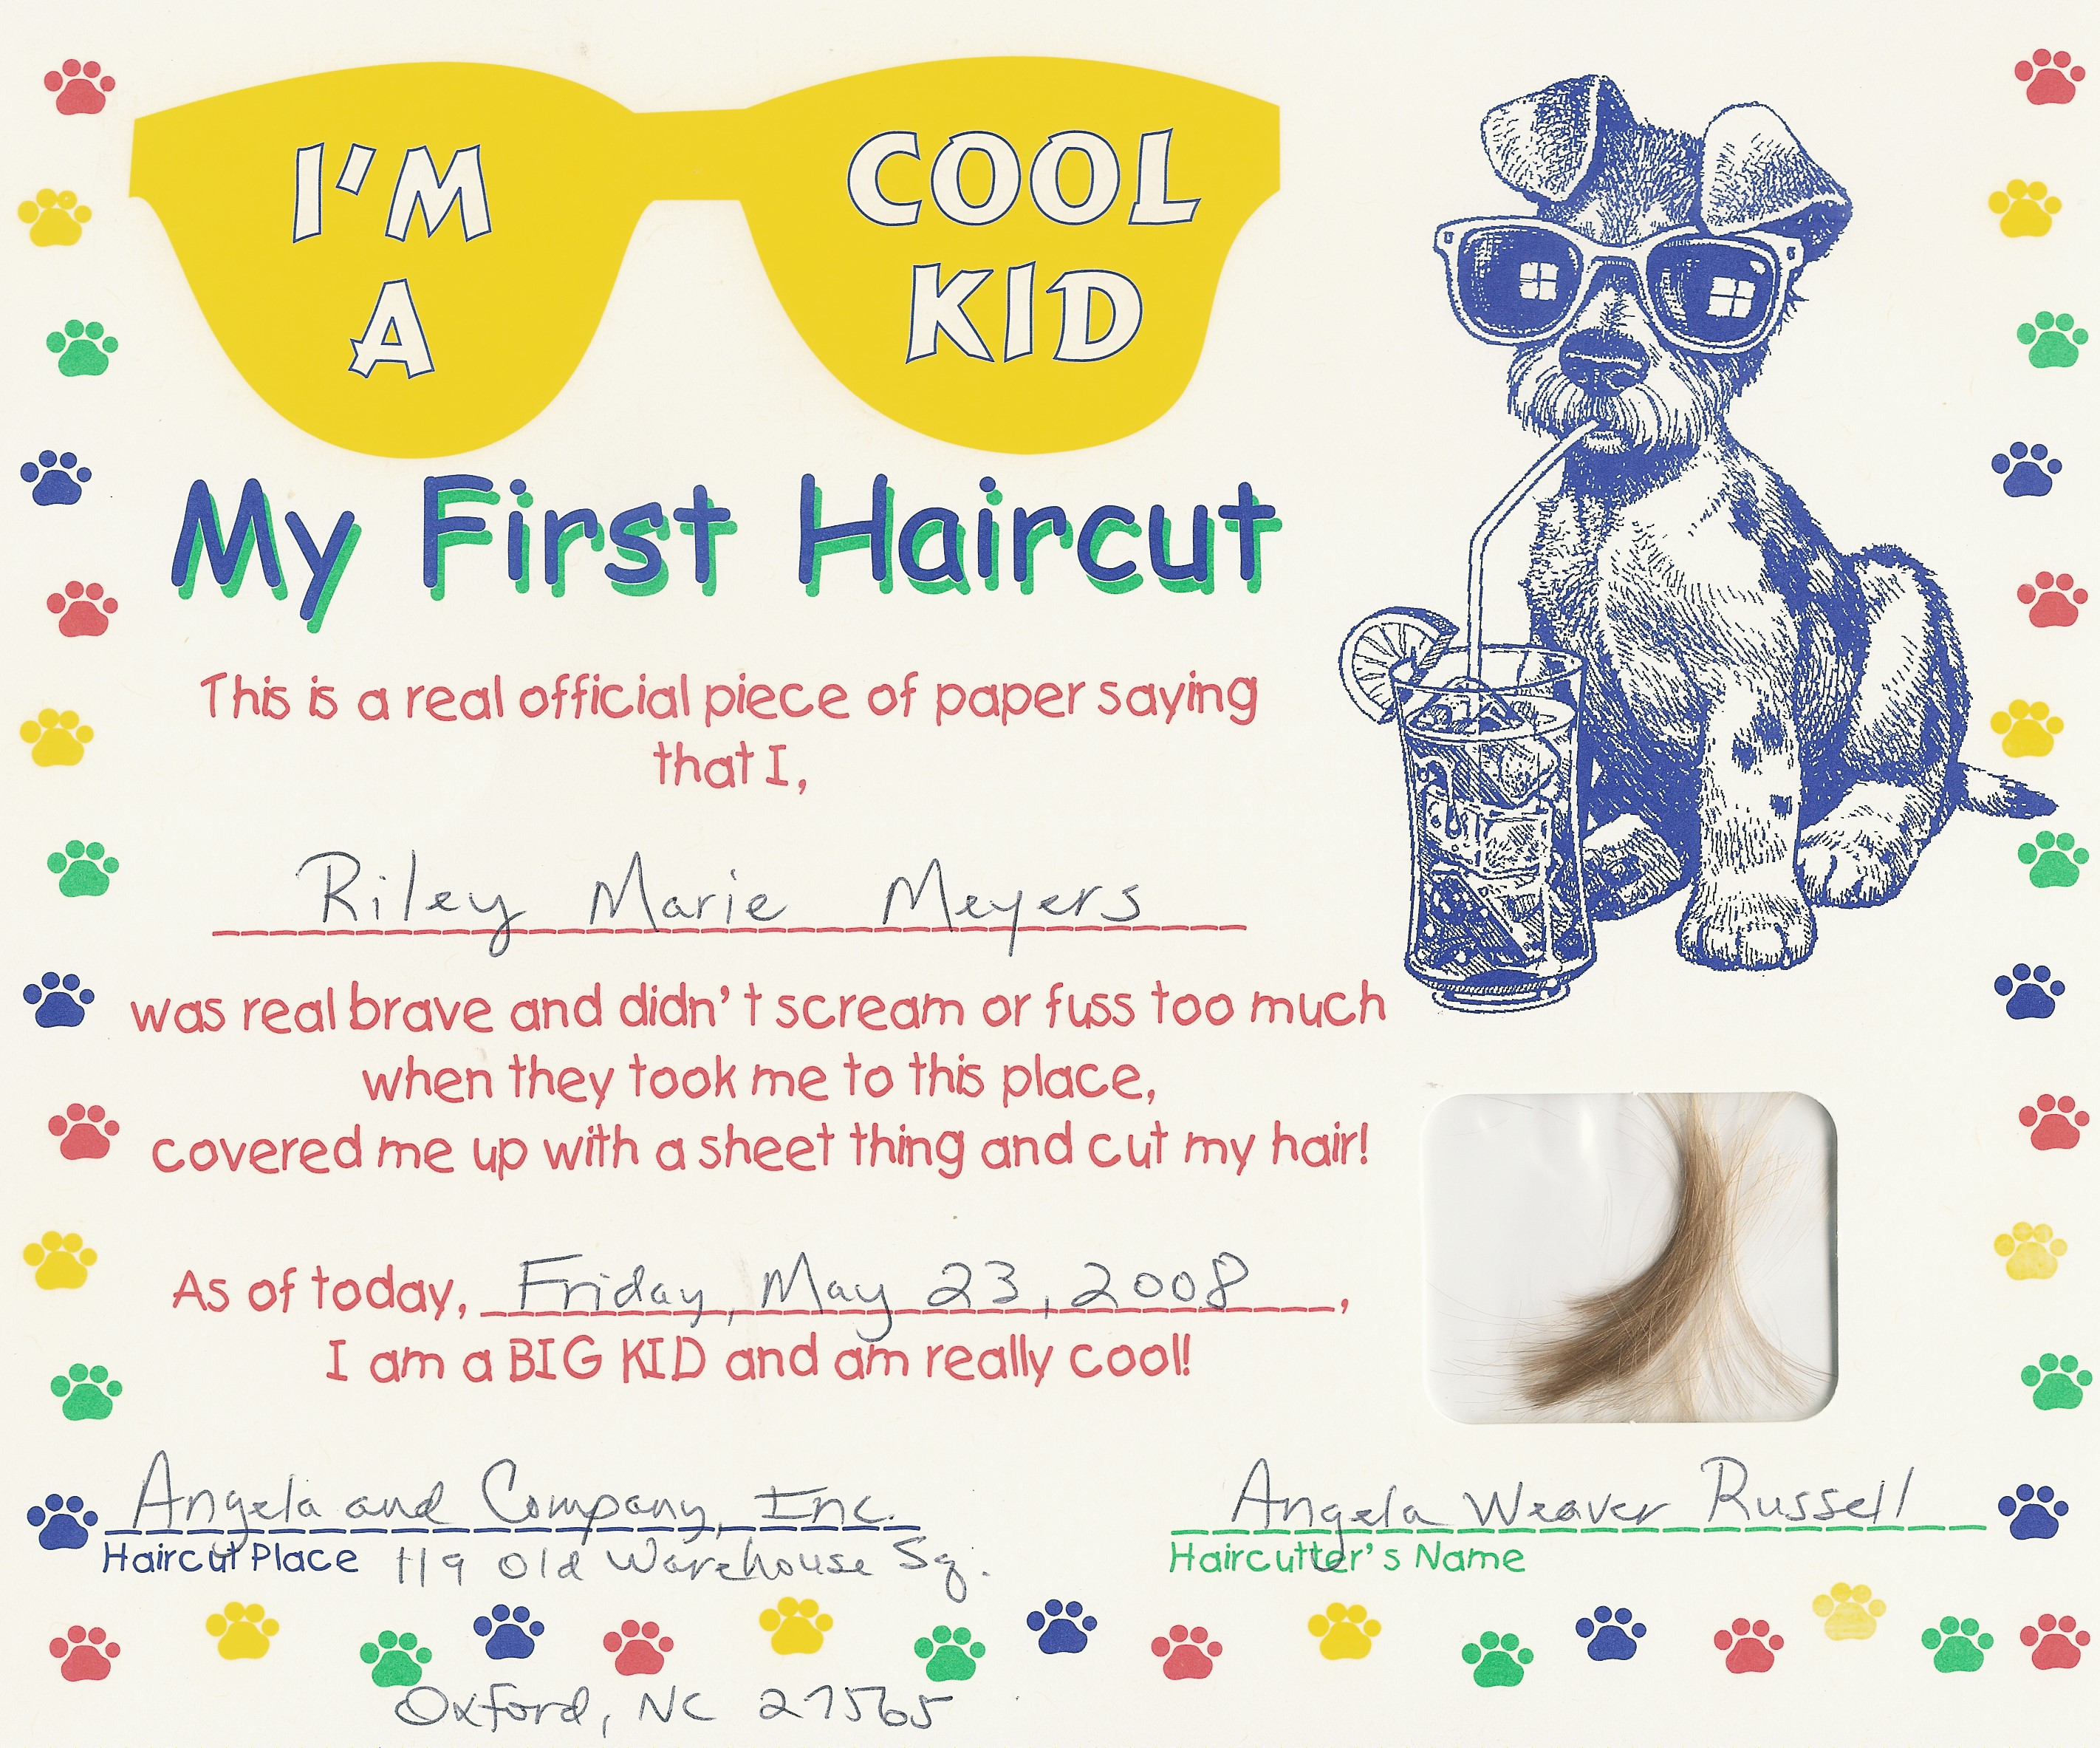 Photos first haircut certificate free printable joke certificates